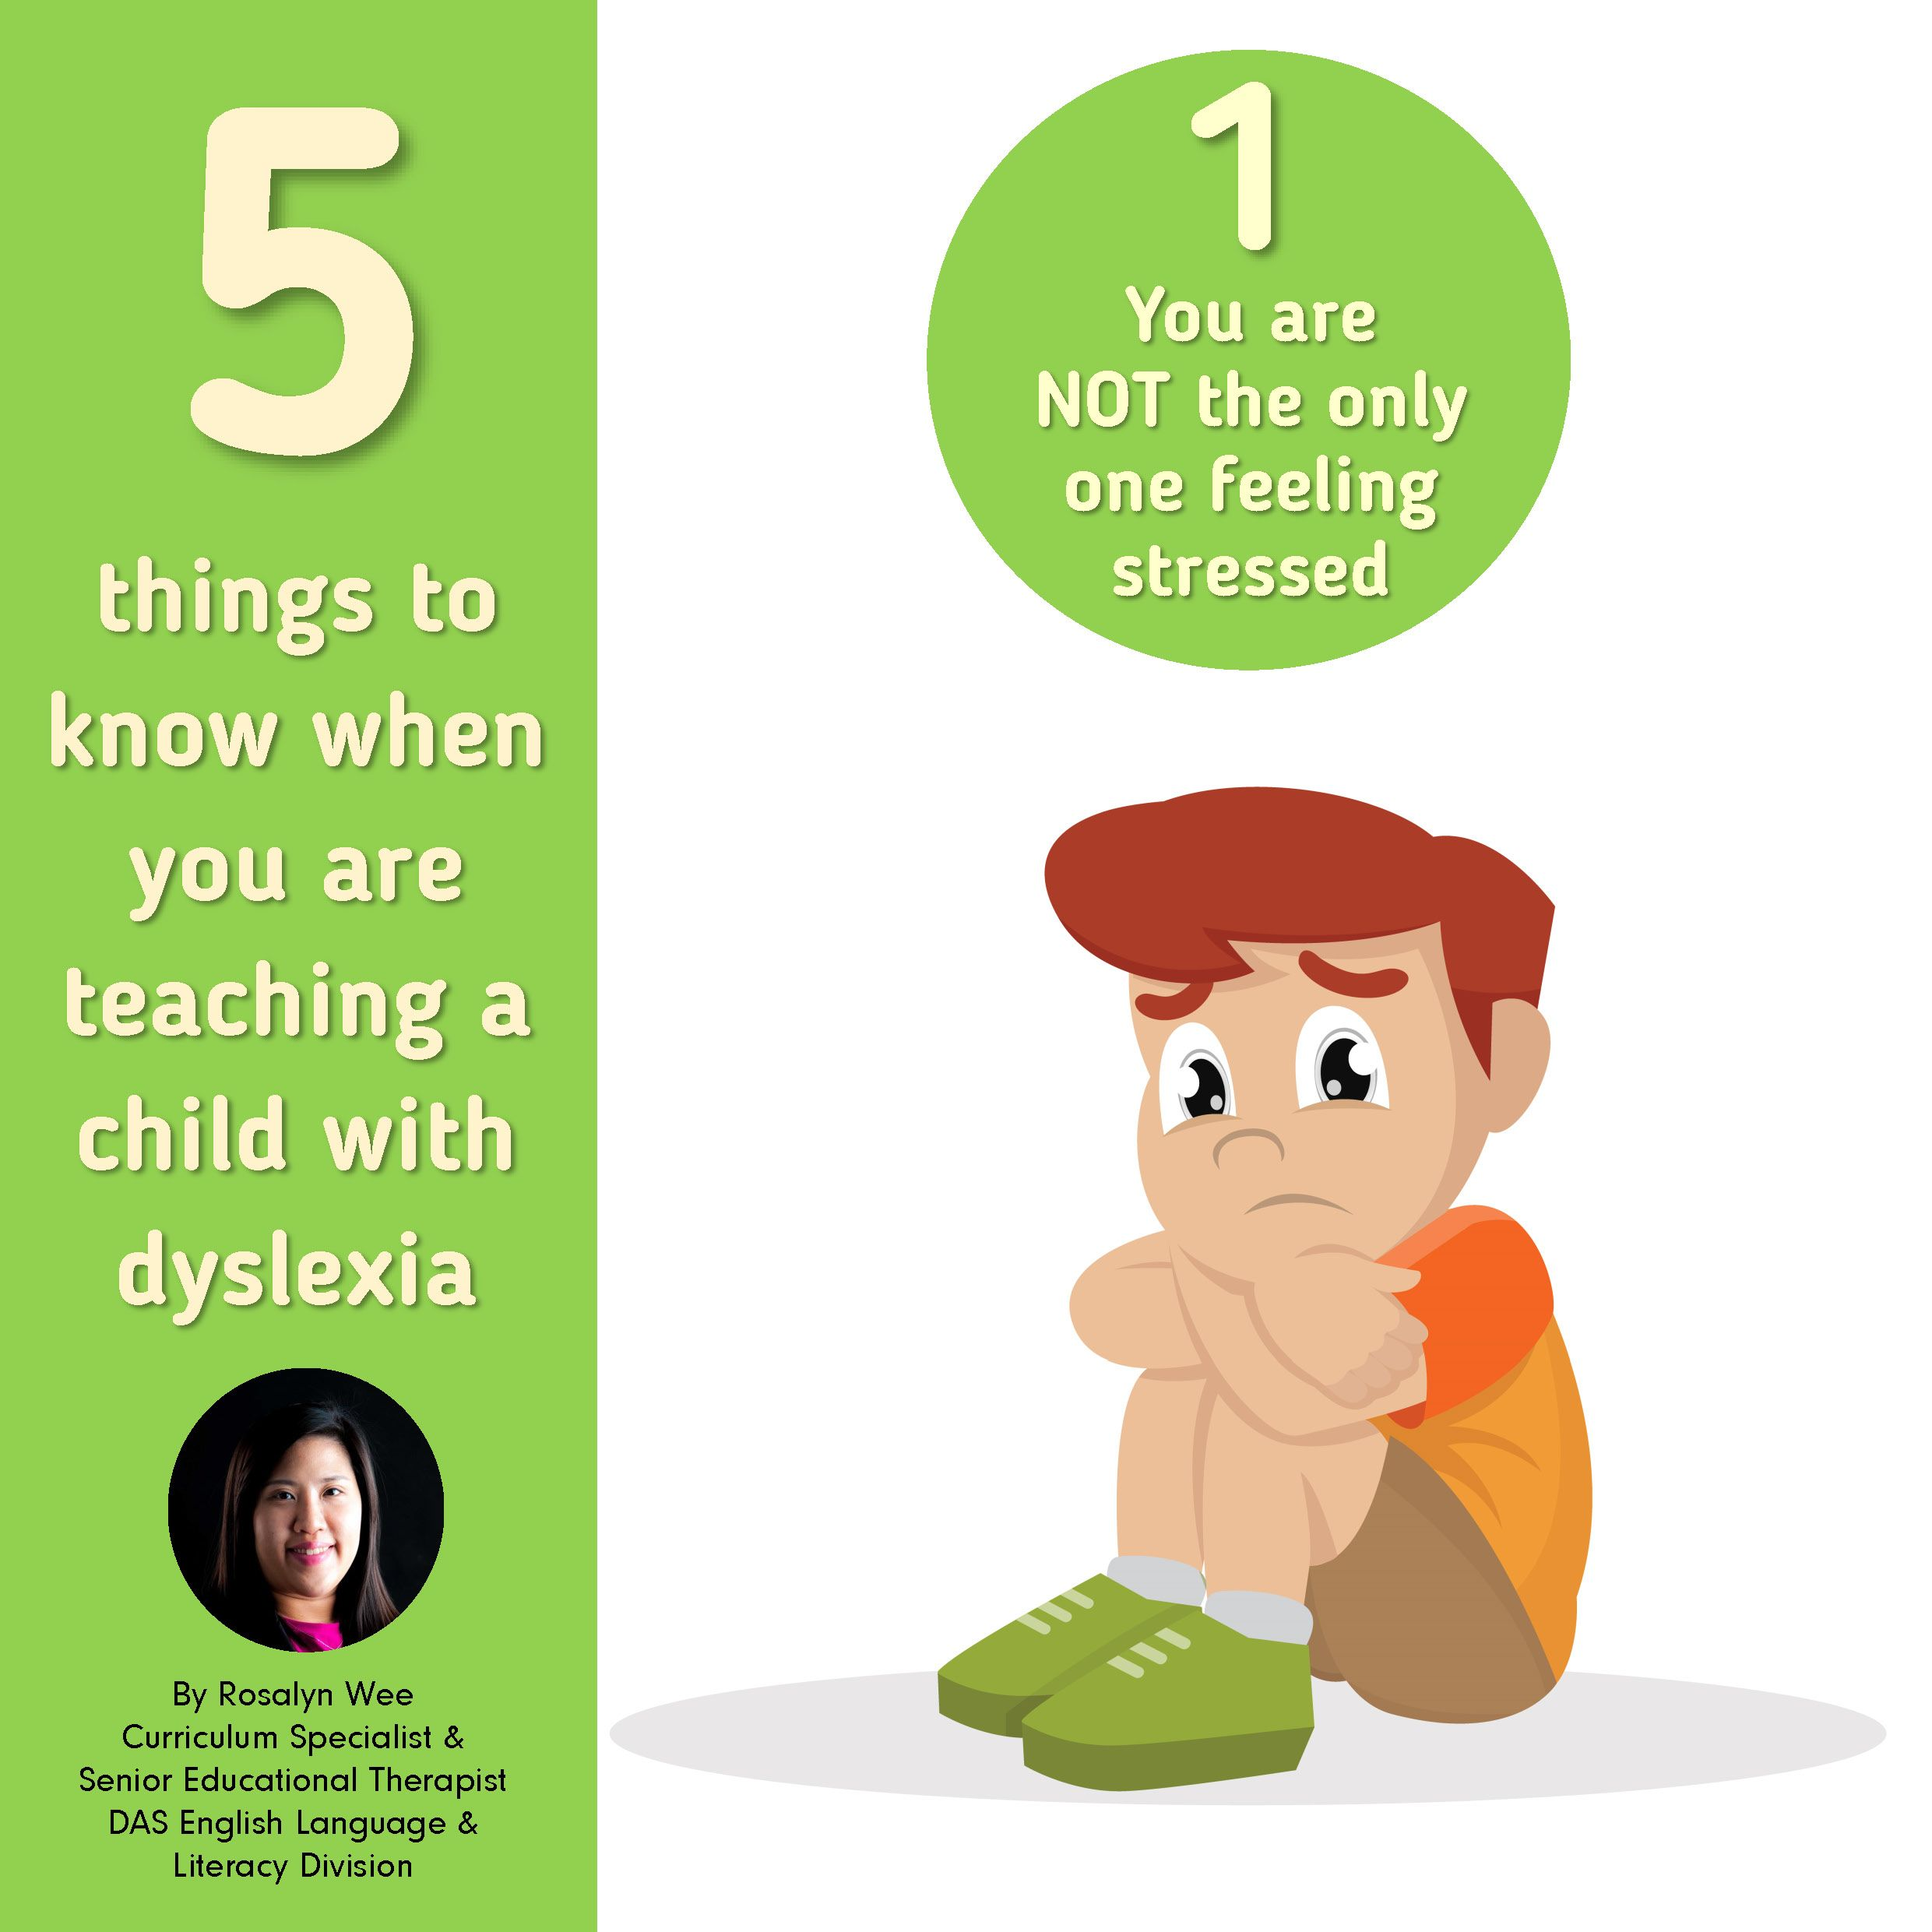 5 Things To Know When Teaching A Child With Dyslexia